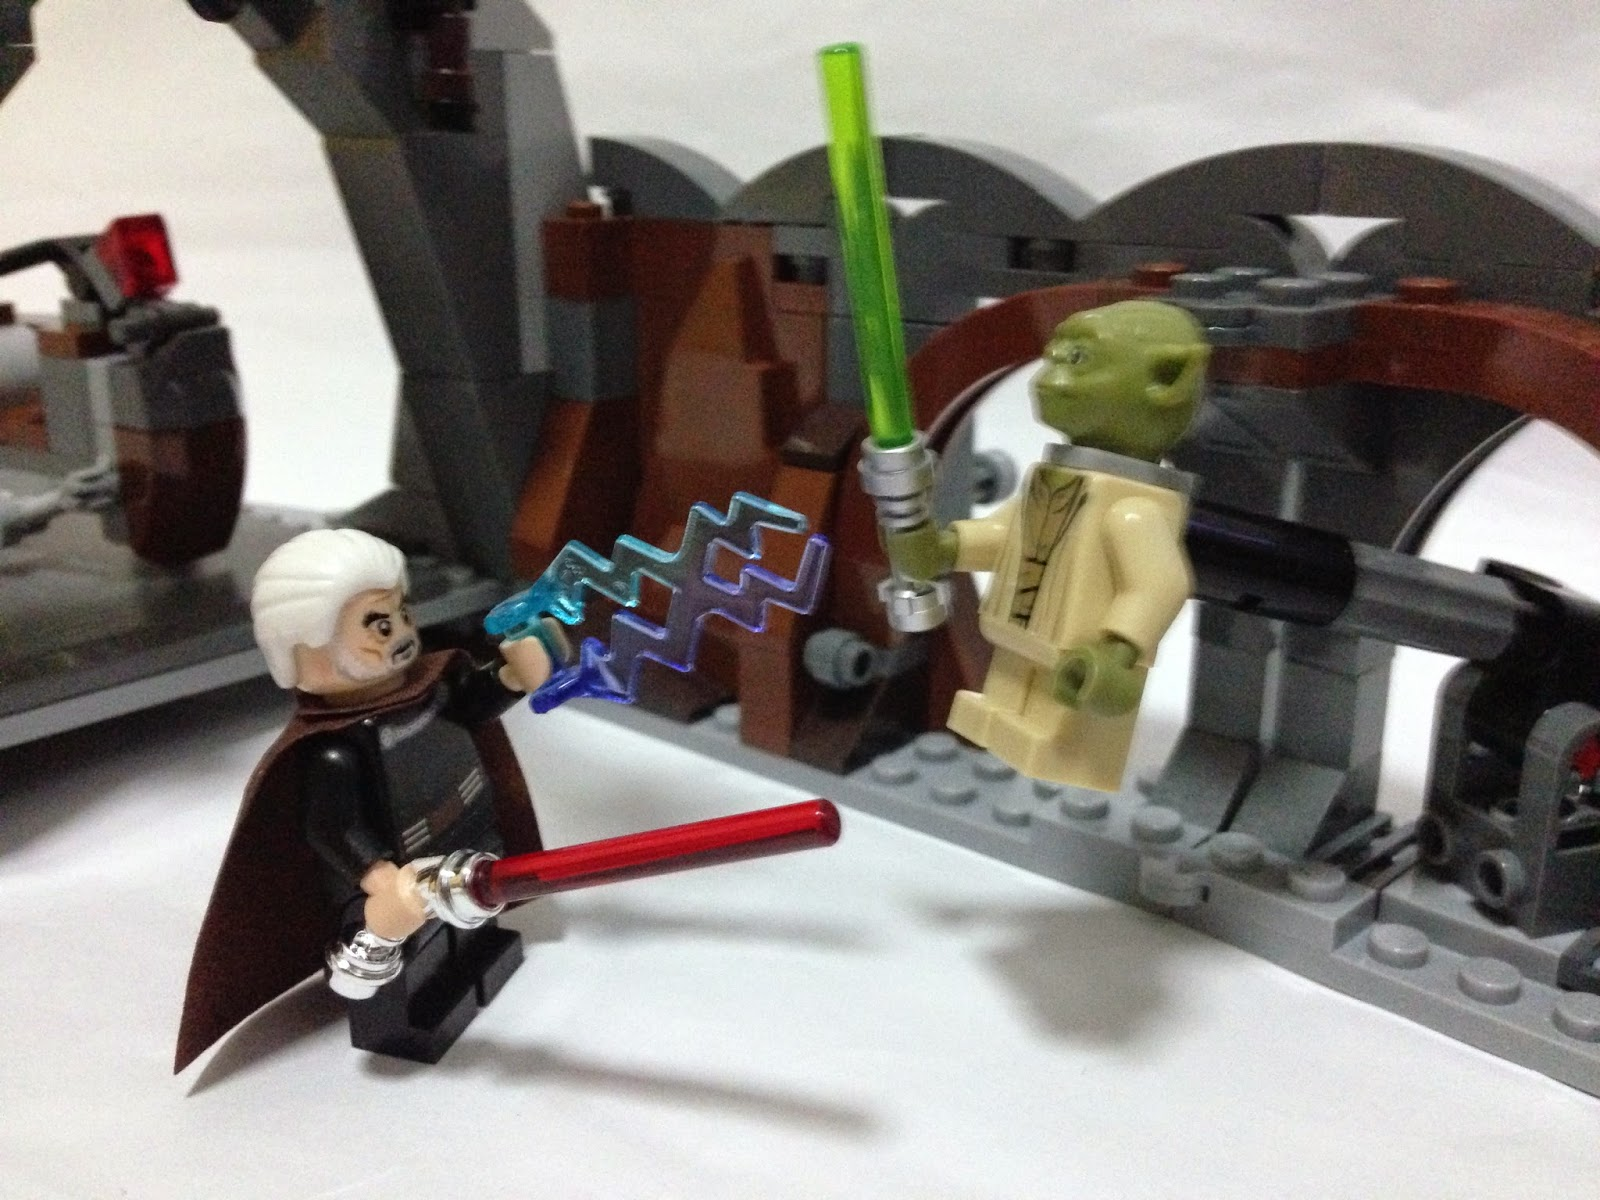 Take this, Yoda! Stop jumping around!